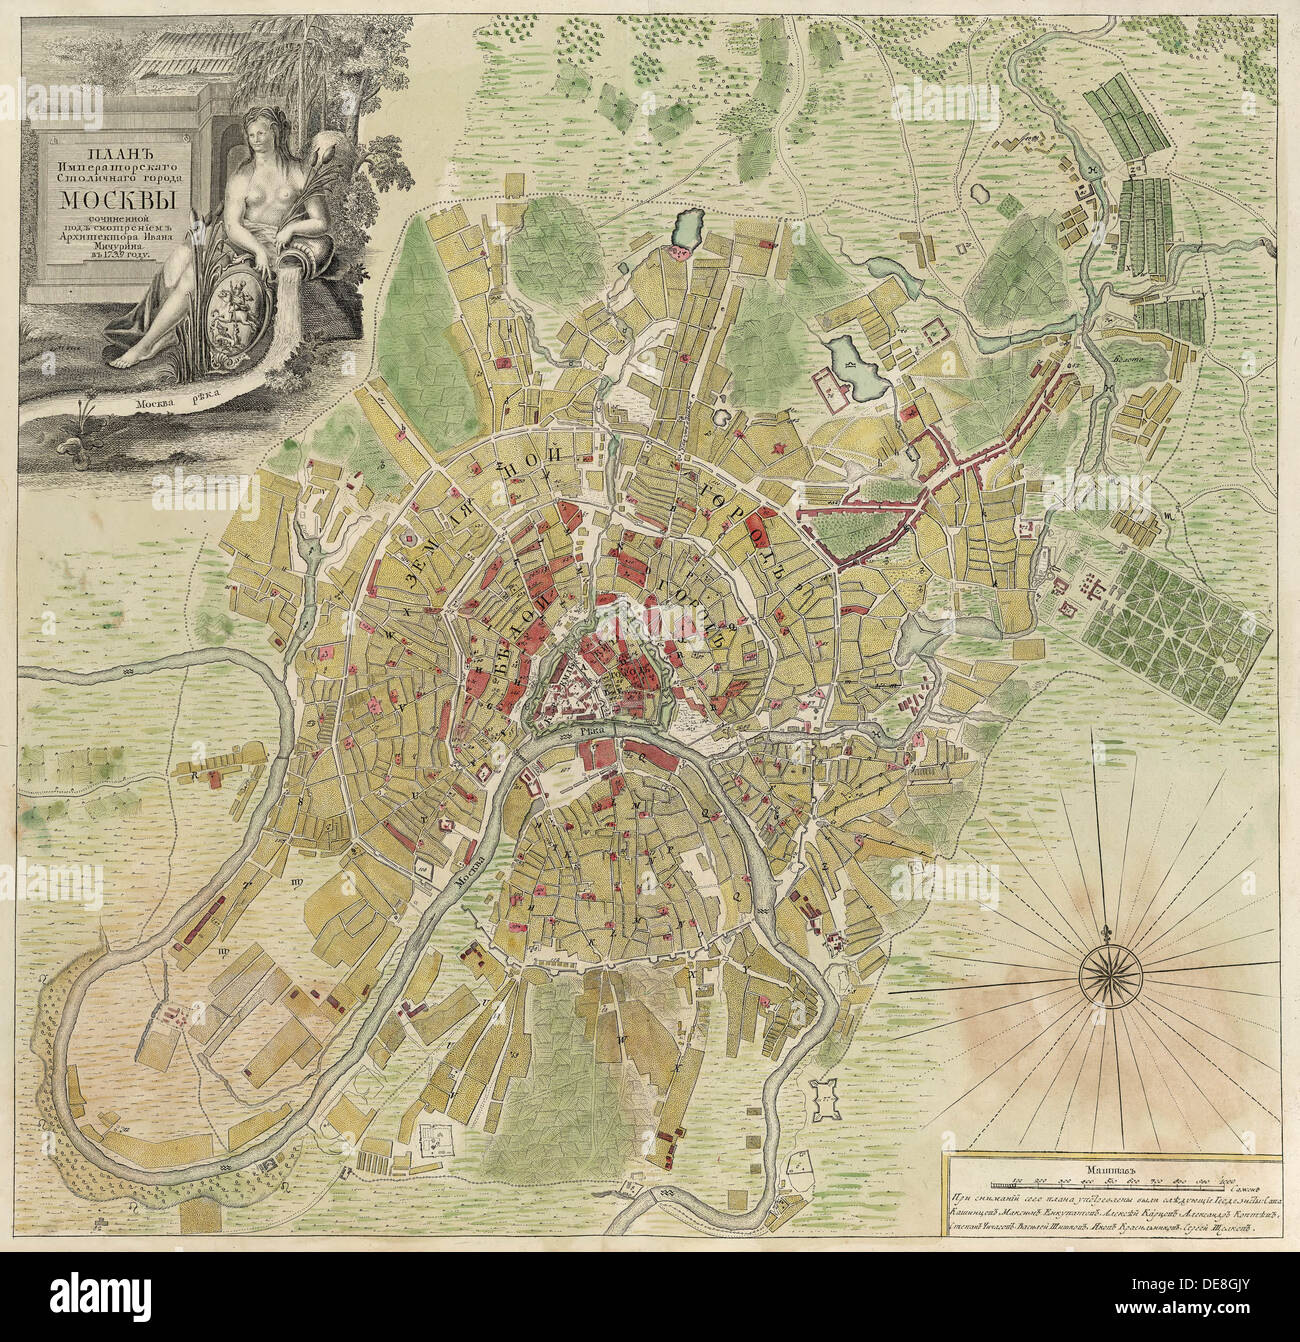 Map of Moscow, 1739. Artist: Michurin, Ivan Fyodorovich (1700-1763) - Stock Image